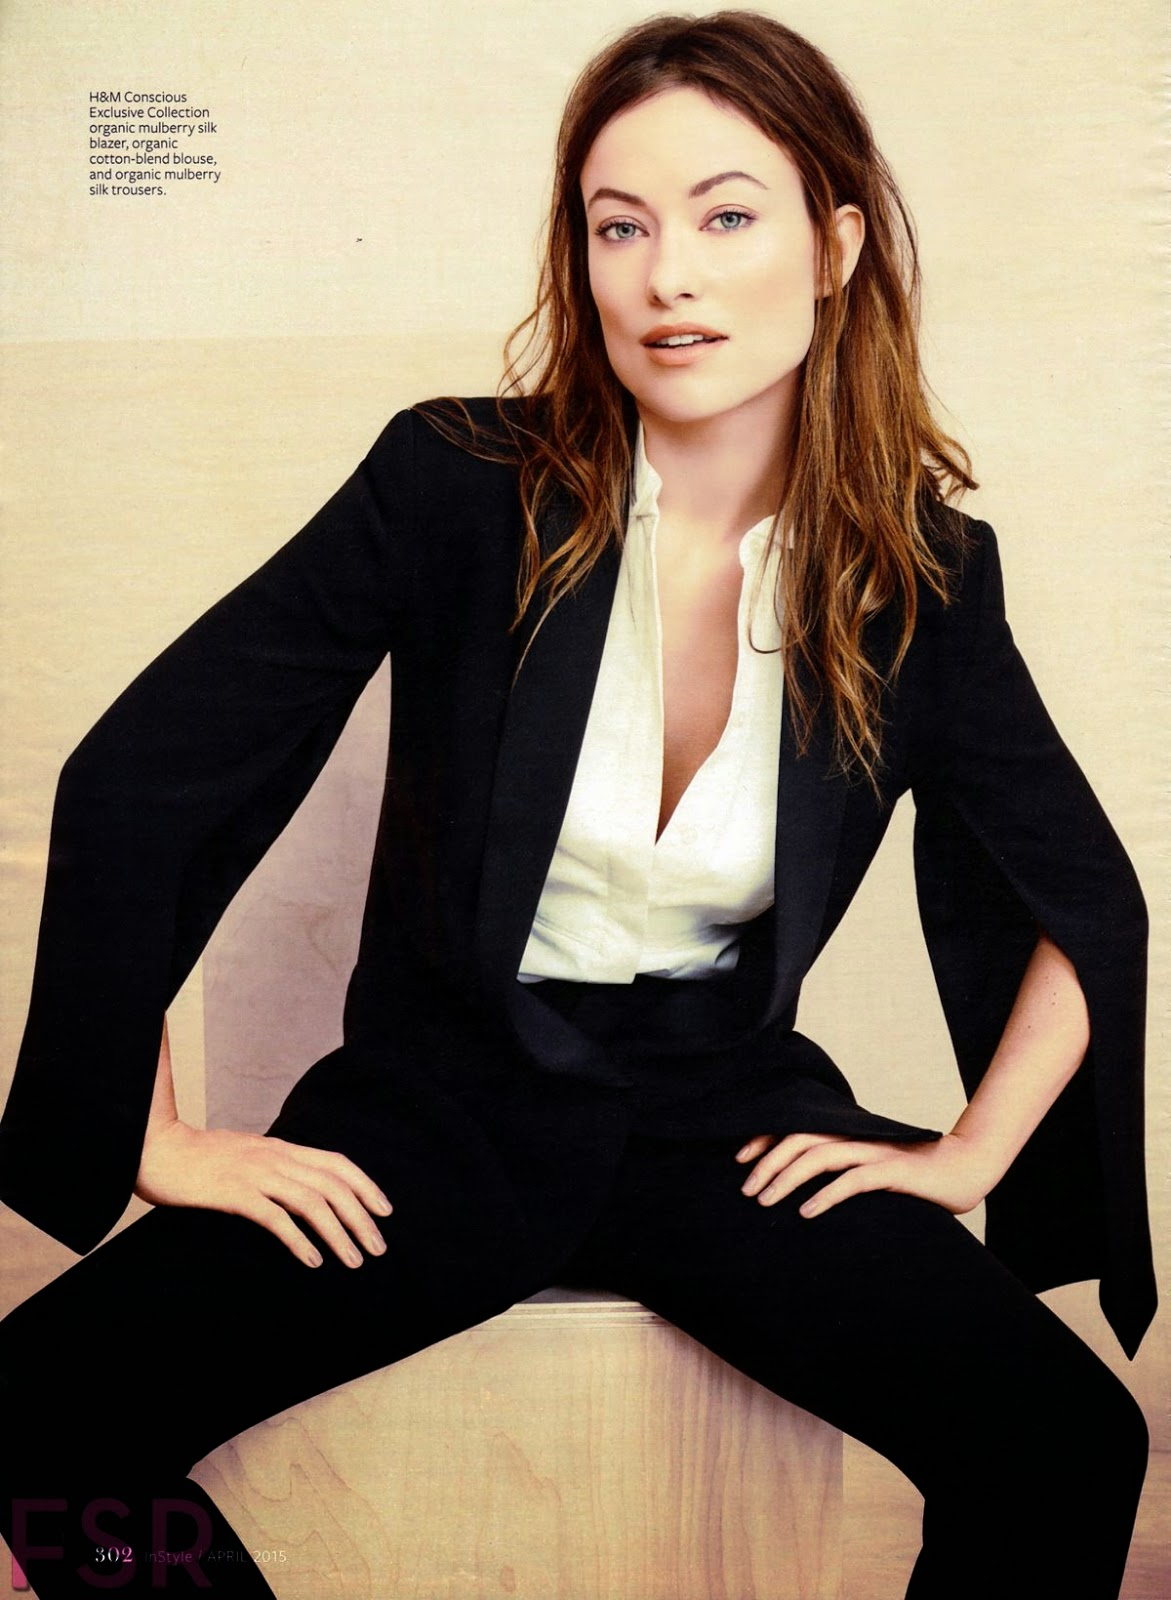 Actress, Producer, Model @ Olivia Wilde - InStyle USA, April 2015